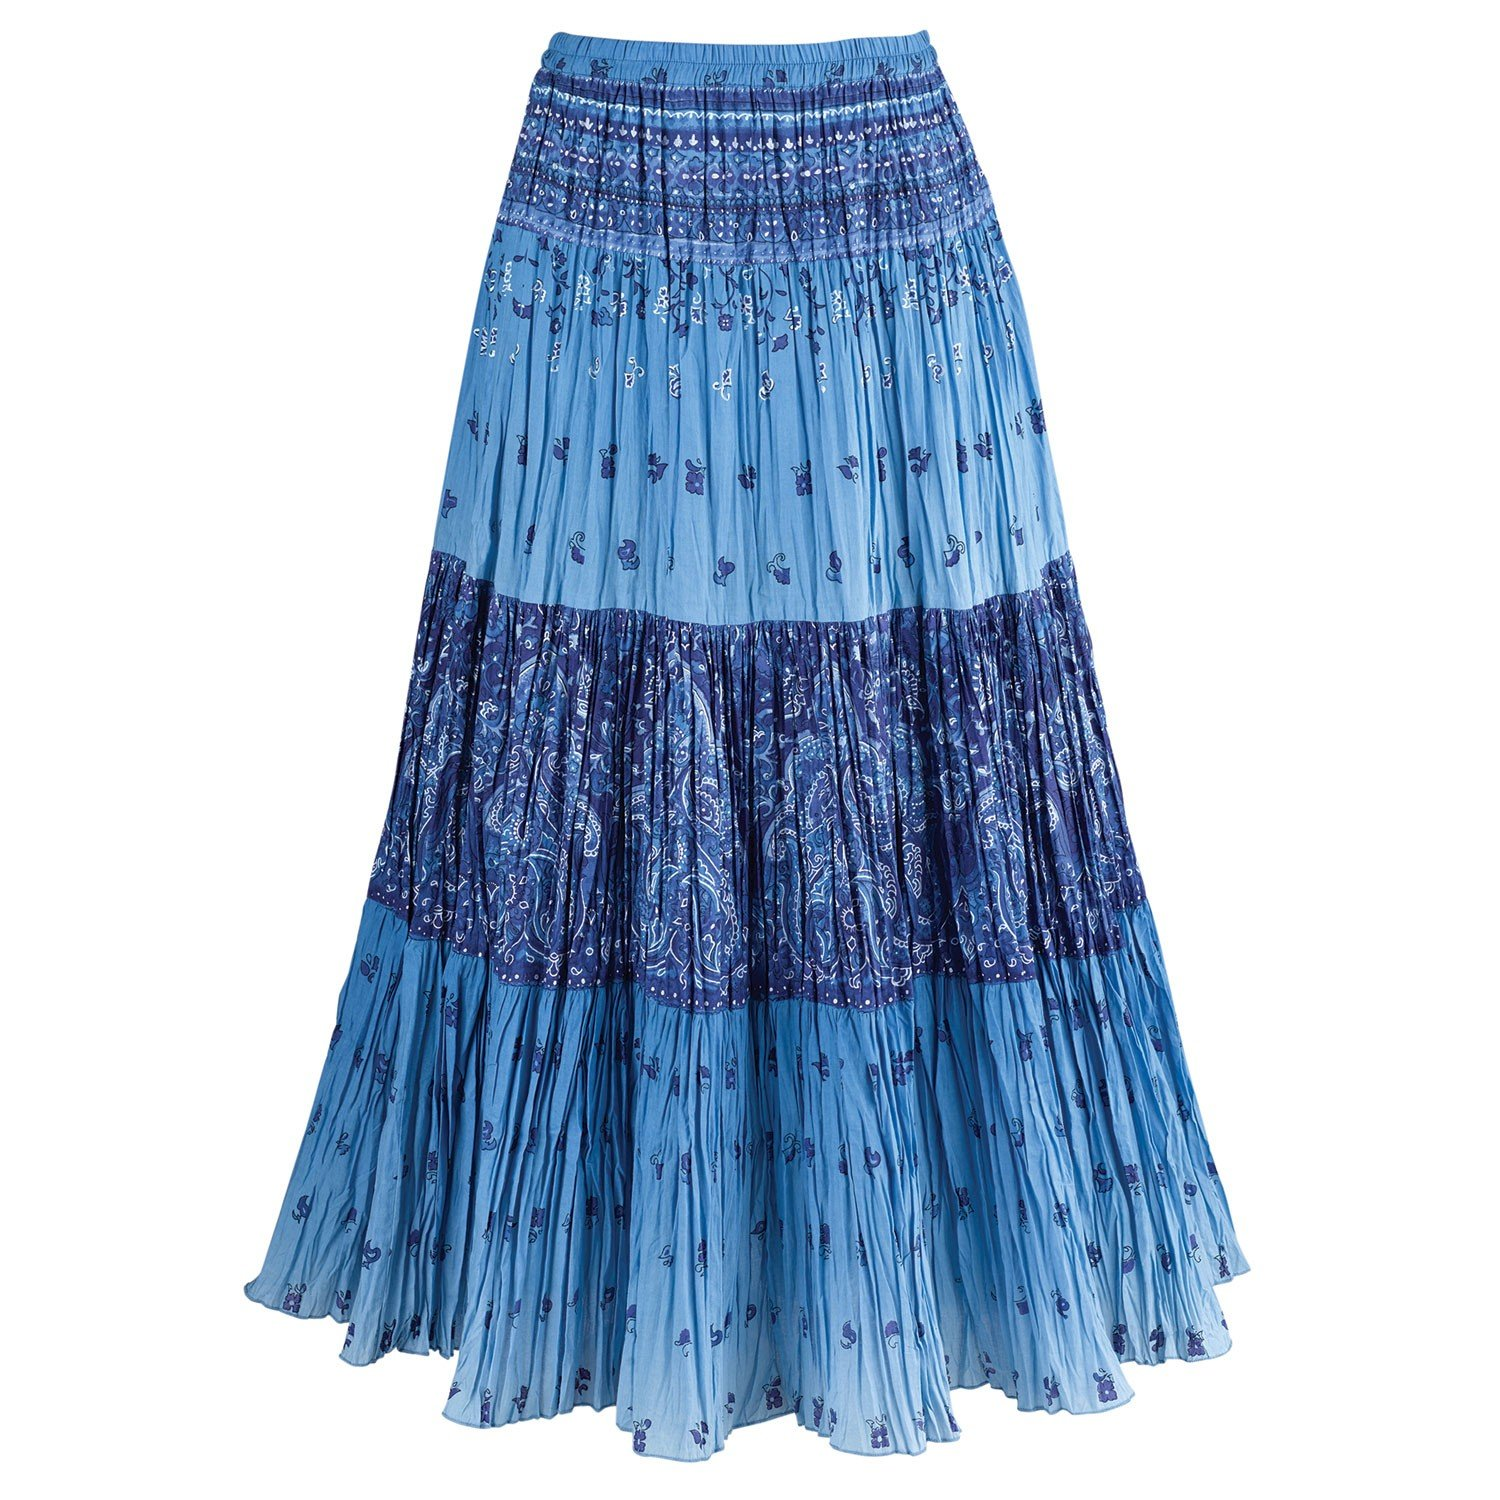 CATALOG CLASSICS Women's Sky Blue Maxi Skirt - Peasant Crinkle Broom Style Skirt - 2X by CATALOG CLASSICS